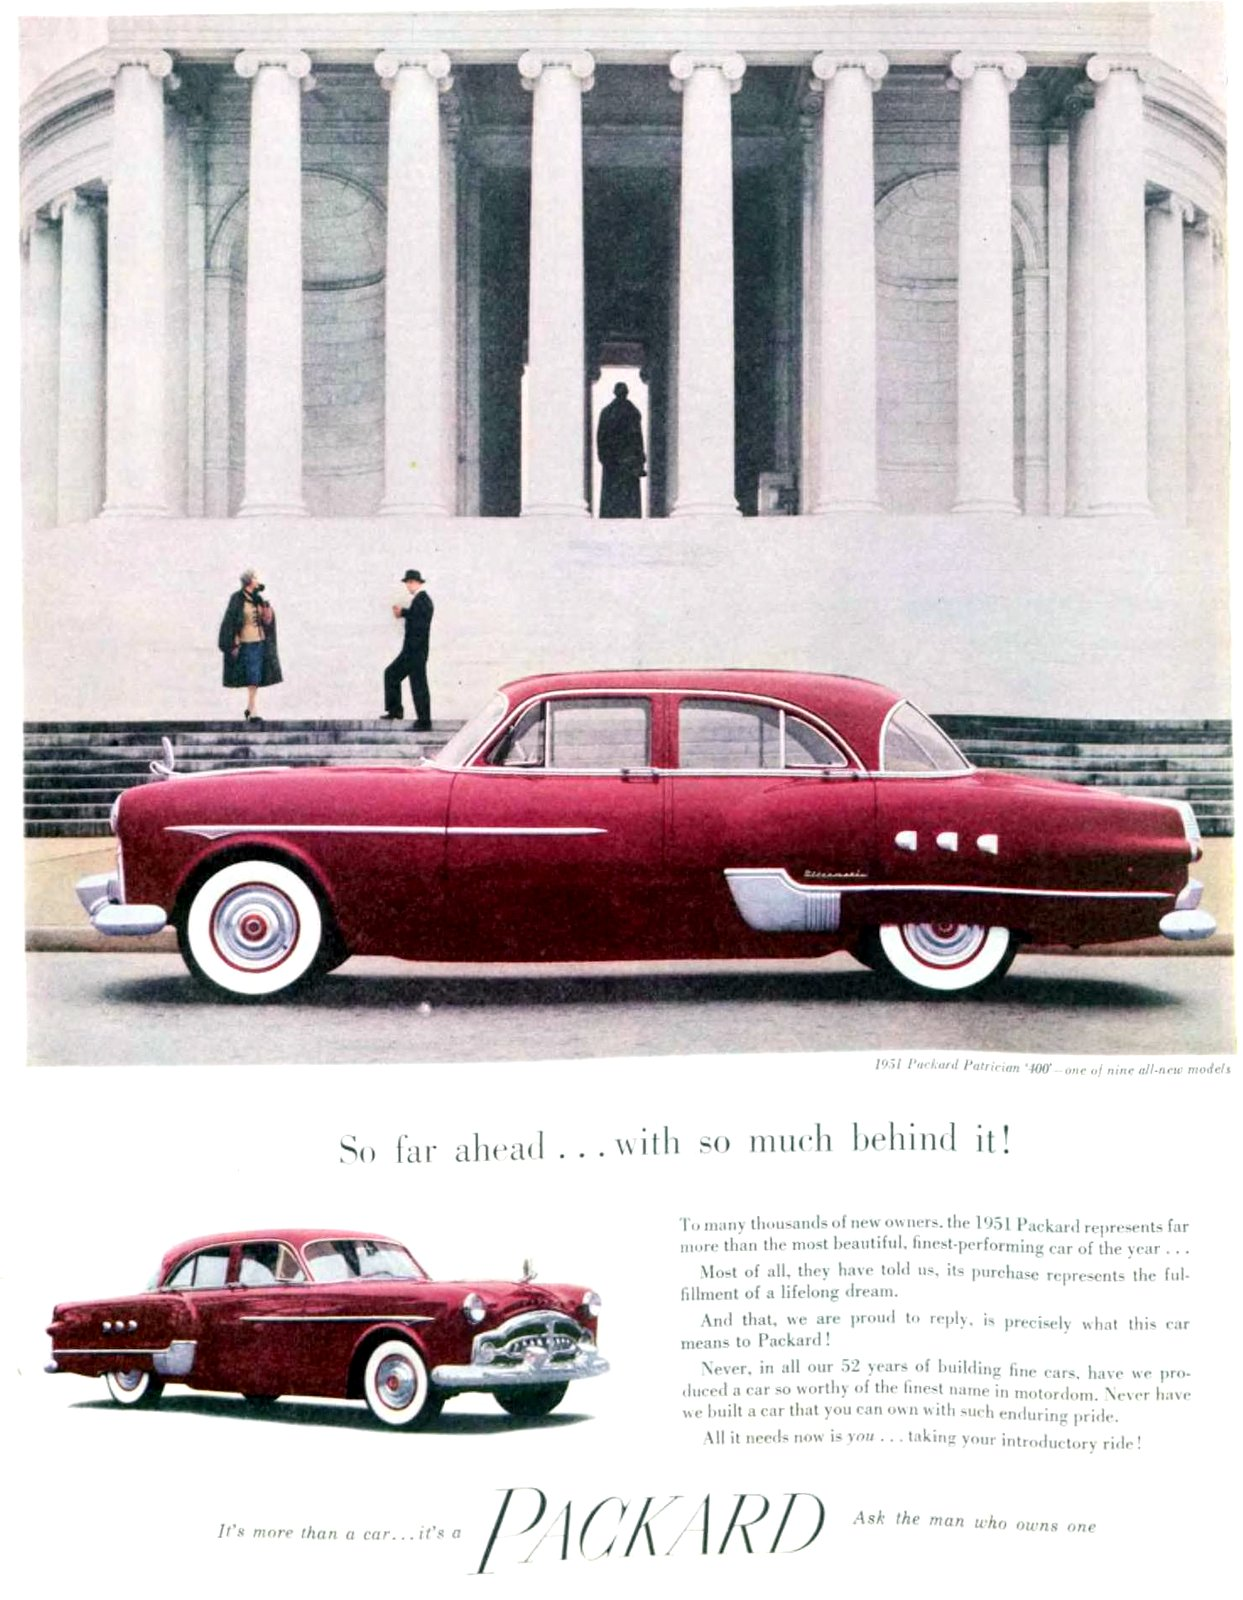 Classic Packard Patrician 400 car (March 1951)